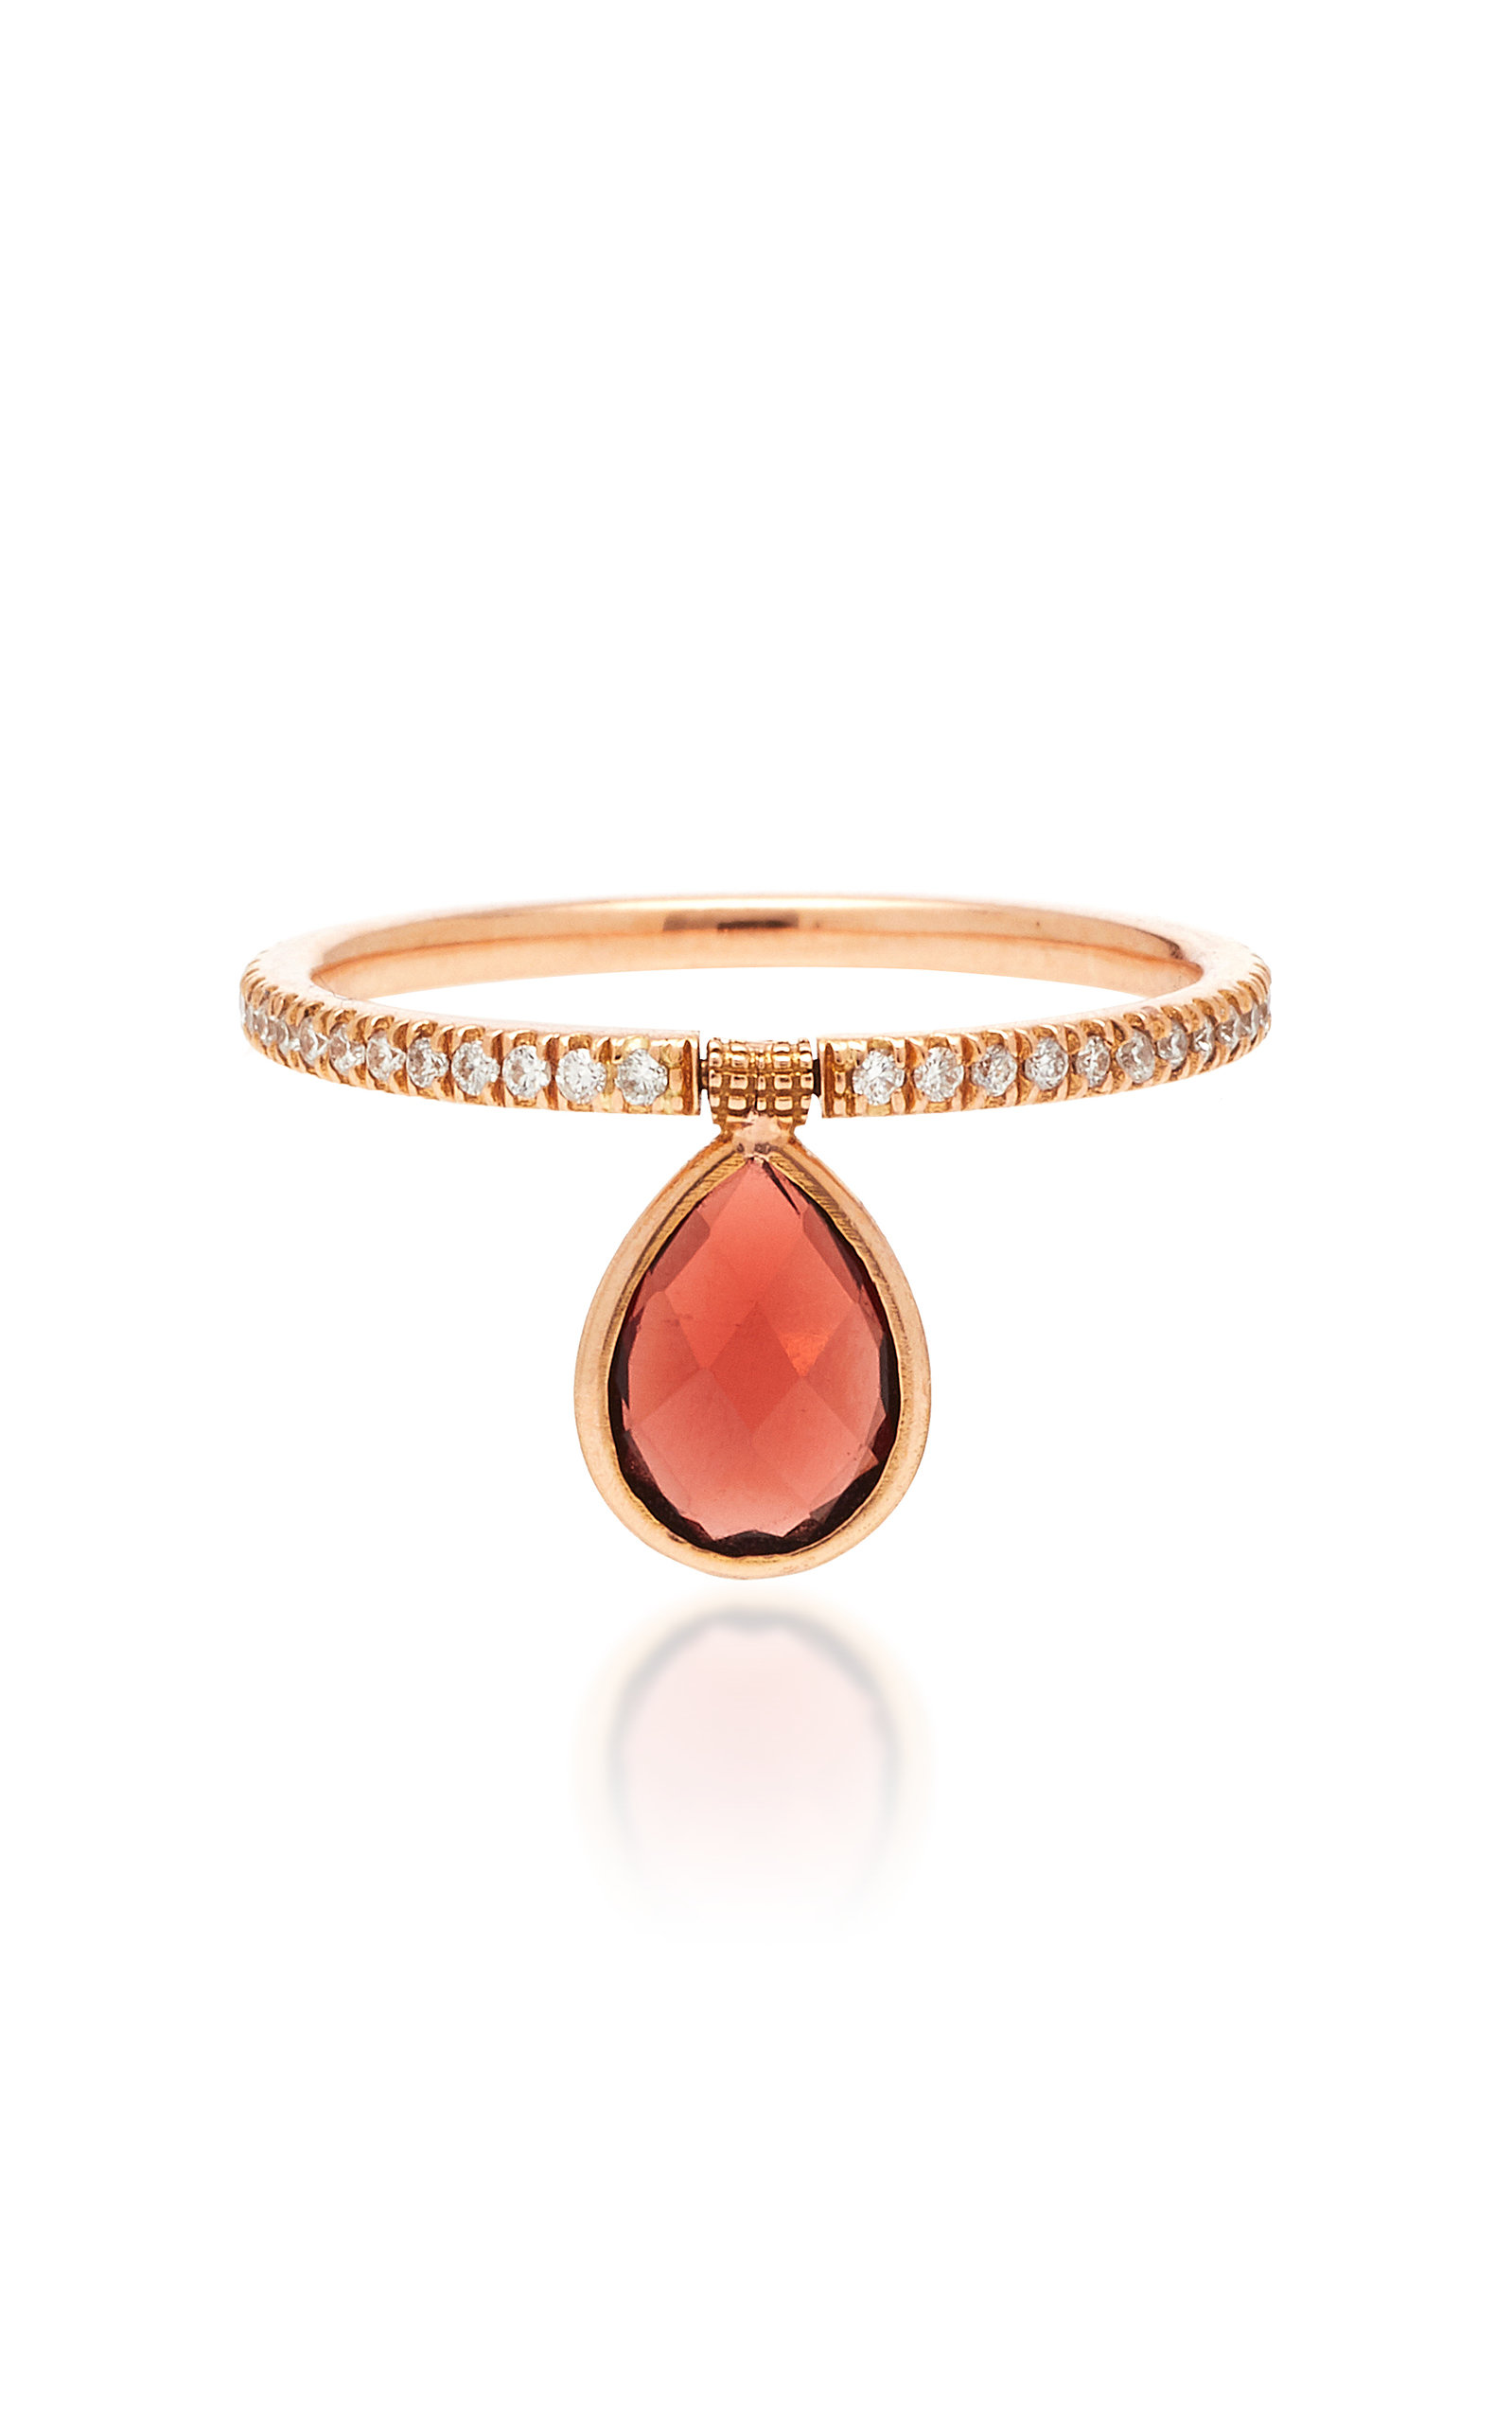 Rose Gold, Diamond, and Garnet Ring